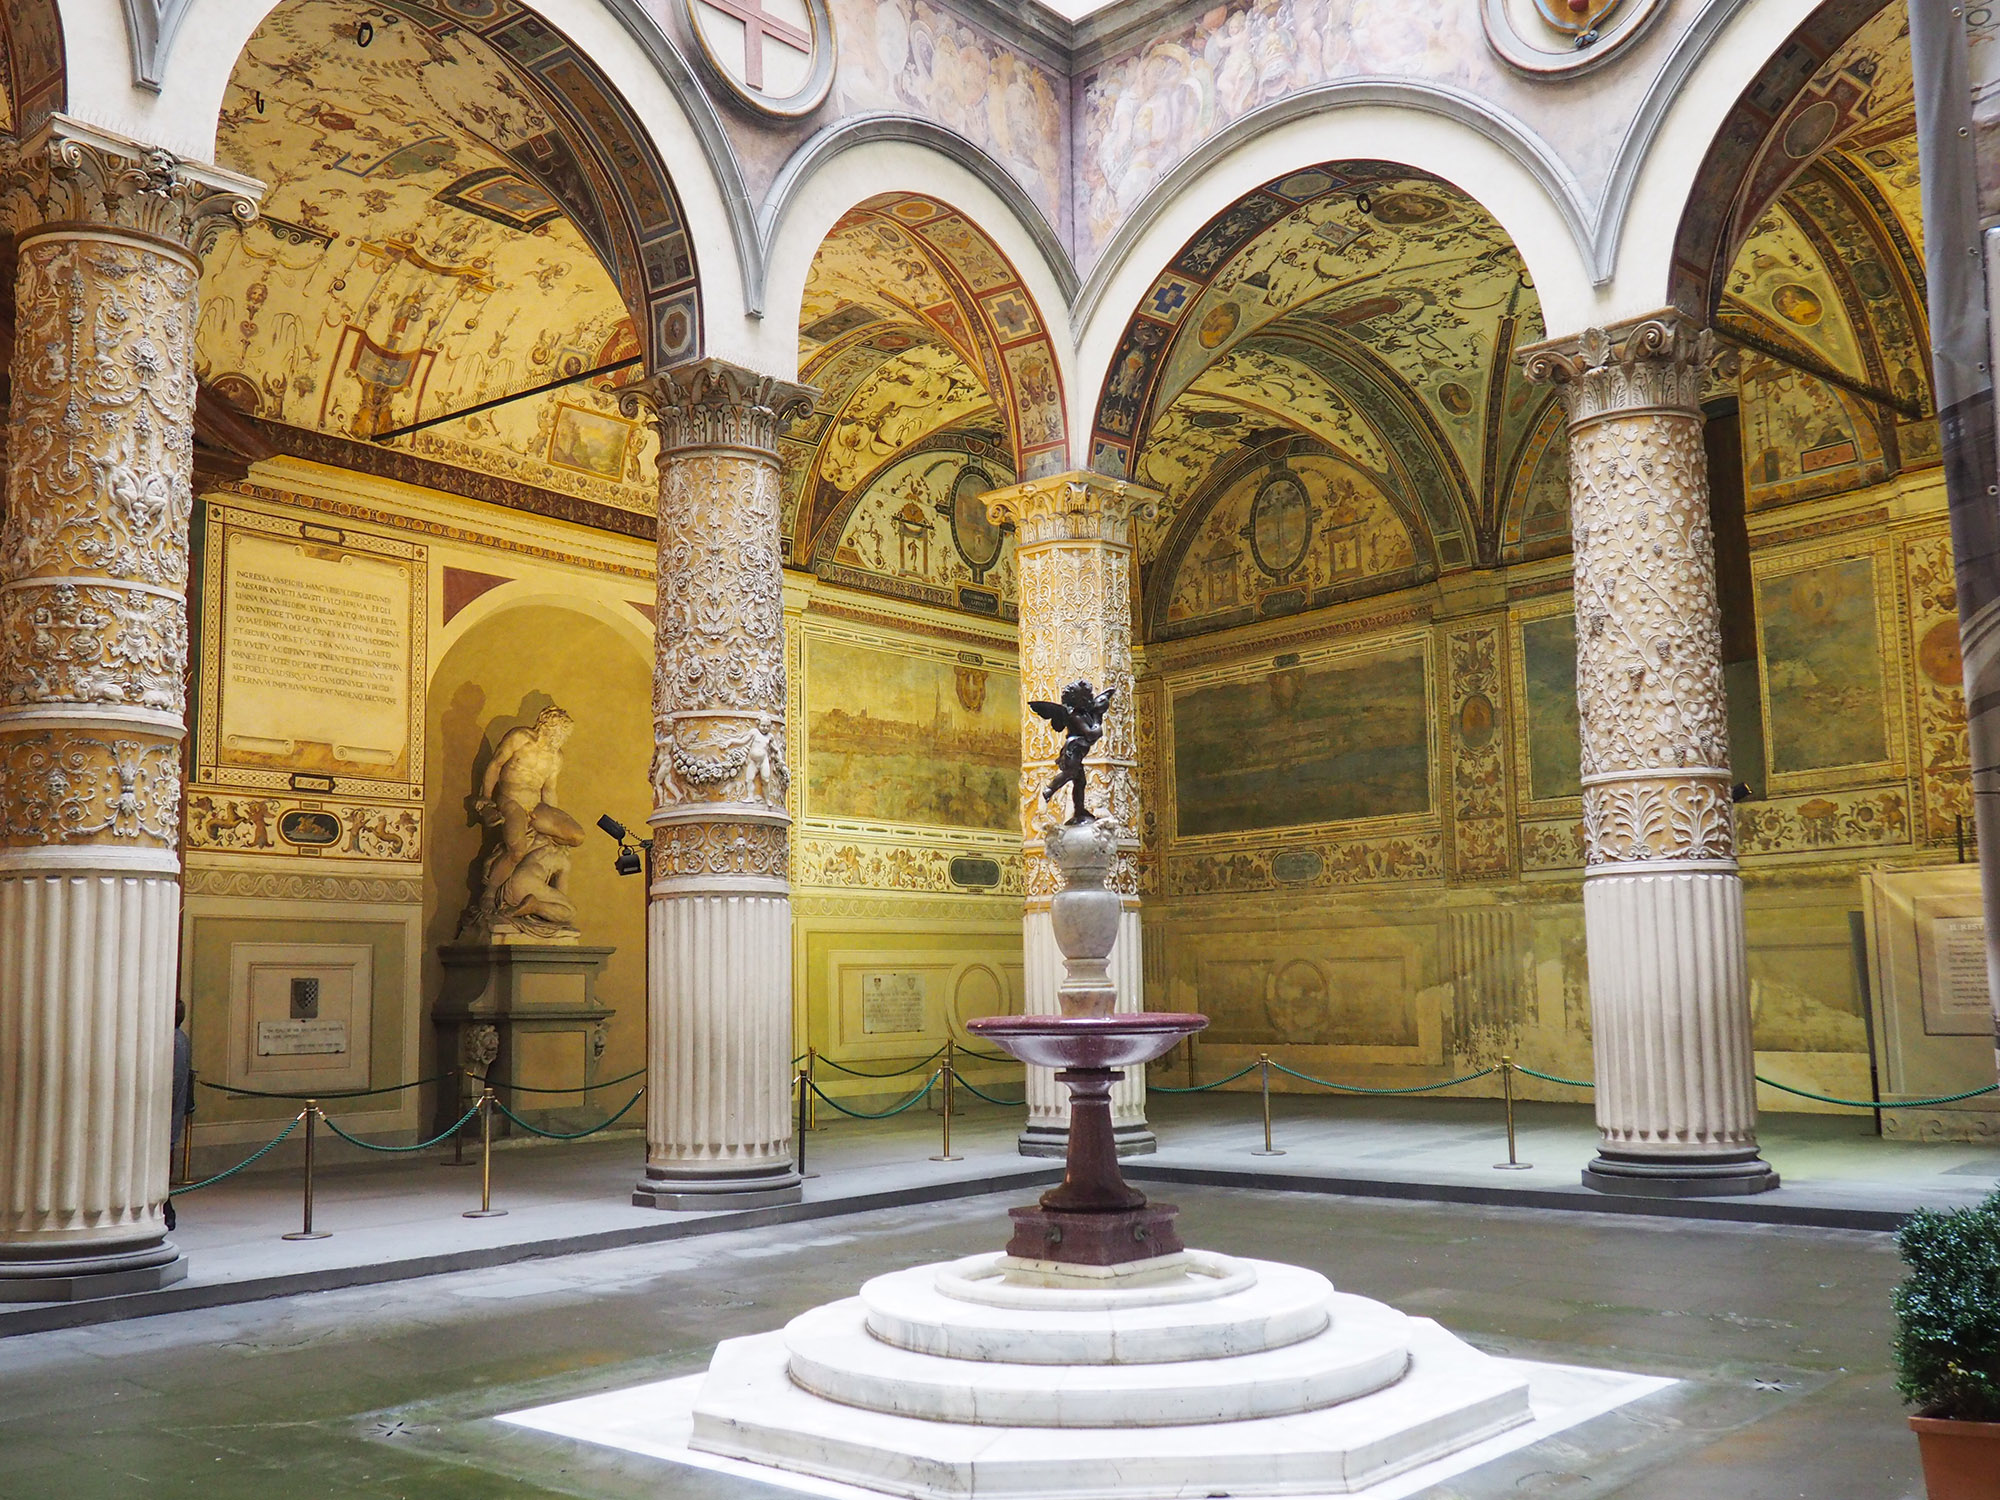 Decorated interior of the Palazzo Vecchio in Florence